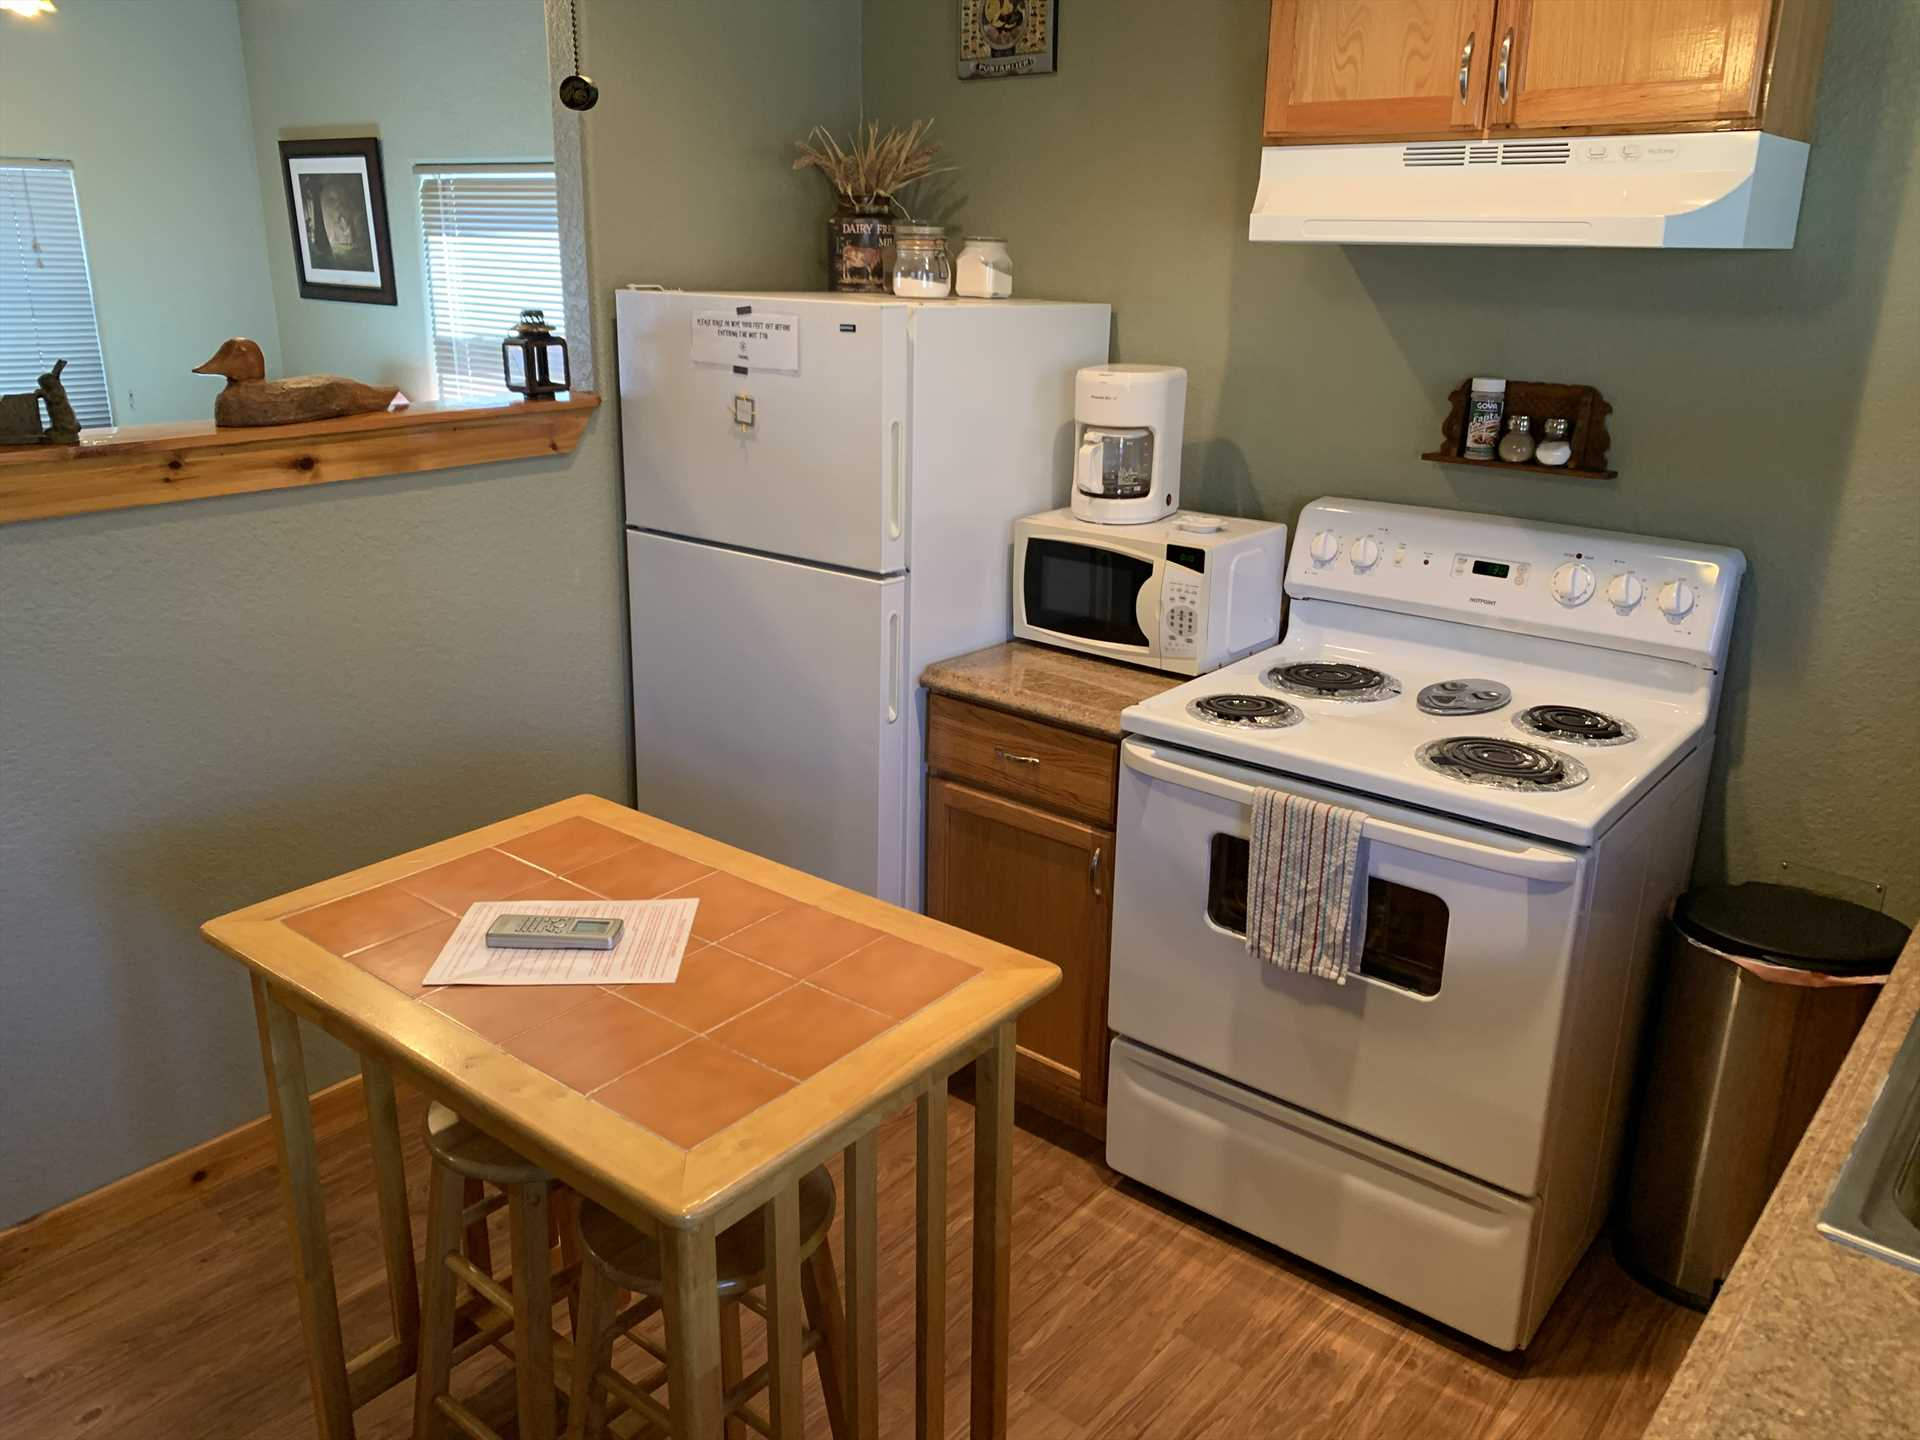 Pots, pans, utensils, dishes and glasses are provided in the kitchen, too.